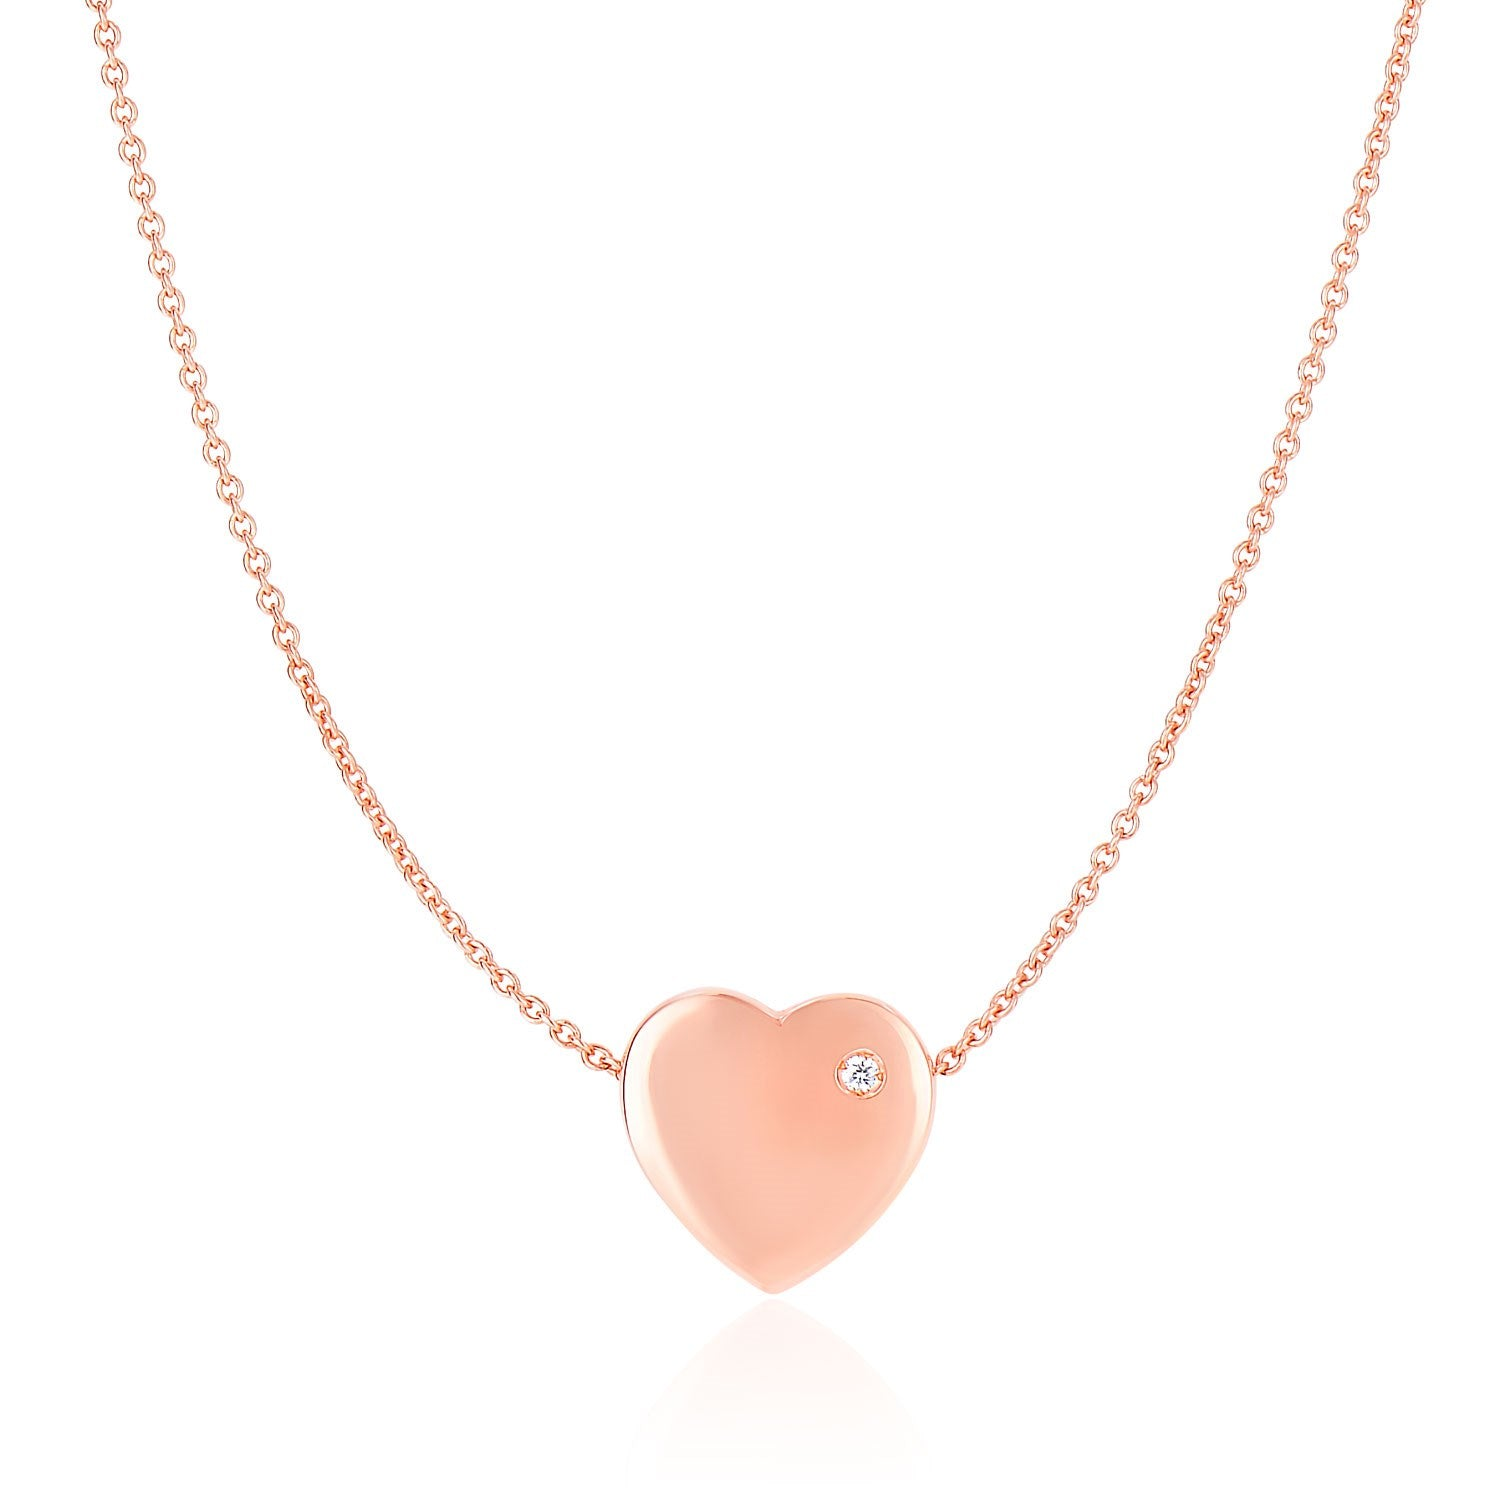 14k Rose Gold Necklace with a Diamond Embellished Flat Heart Design